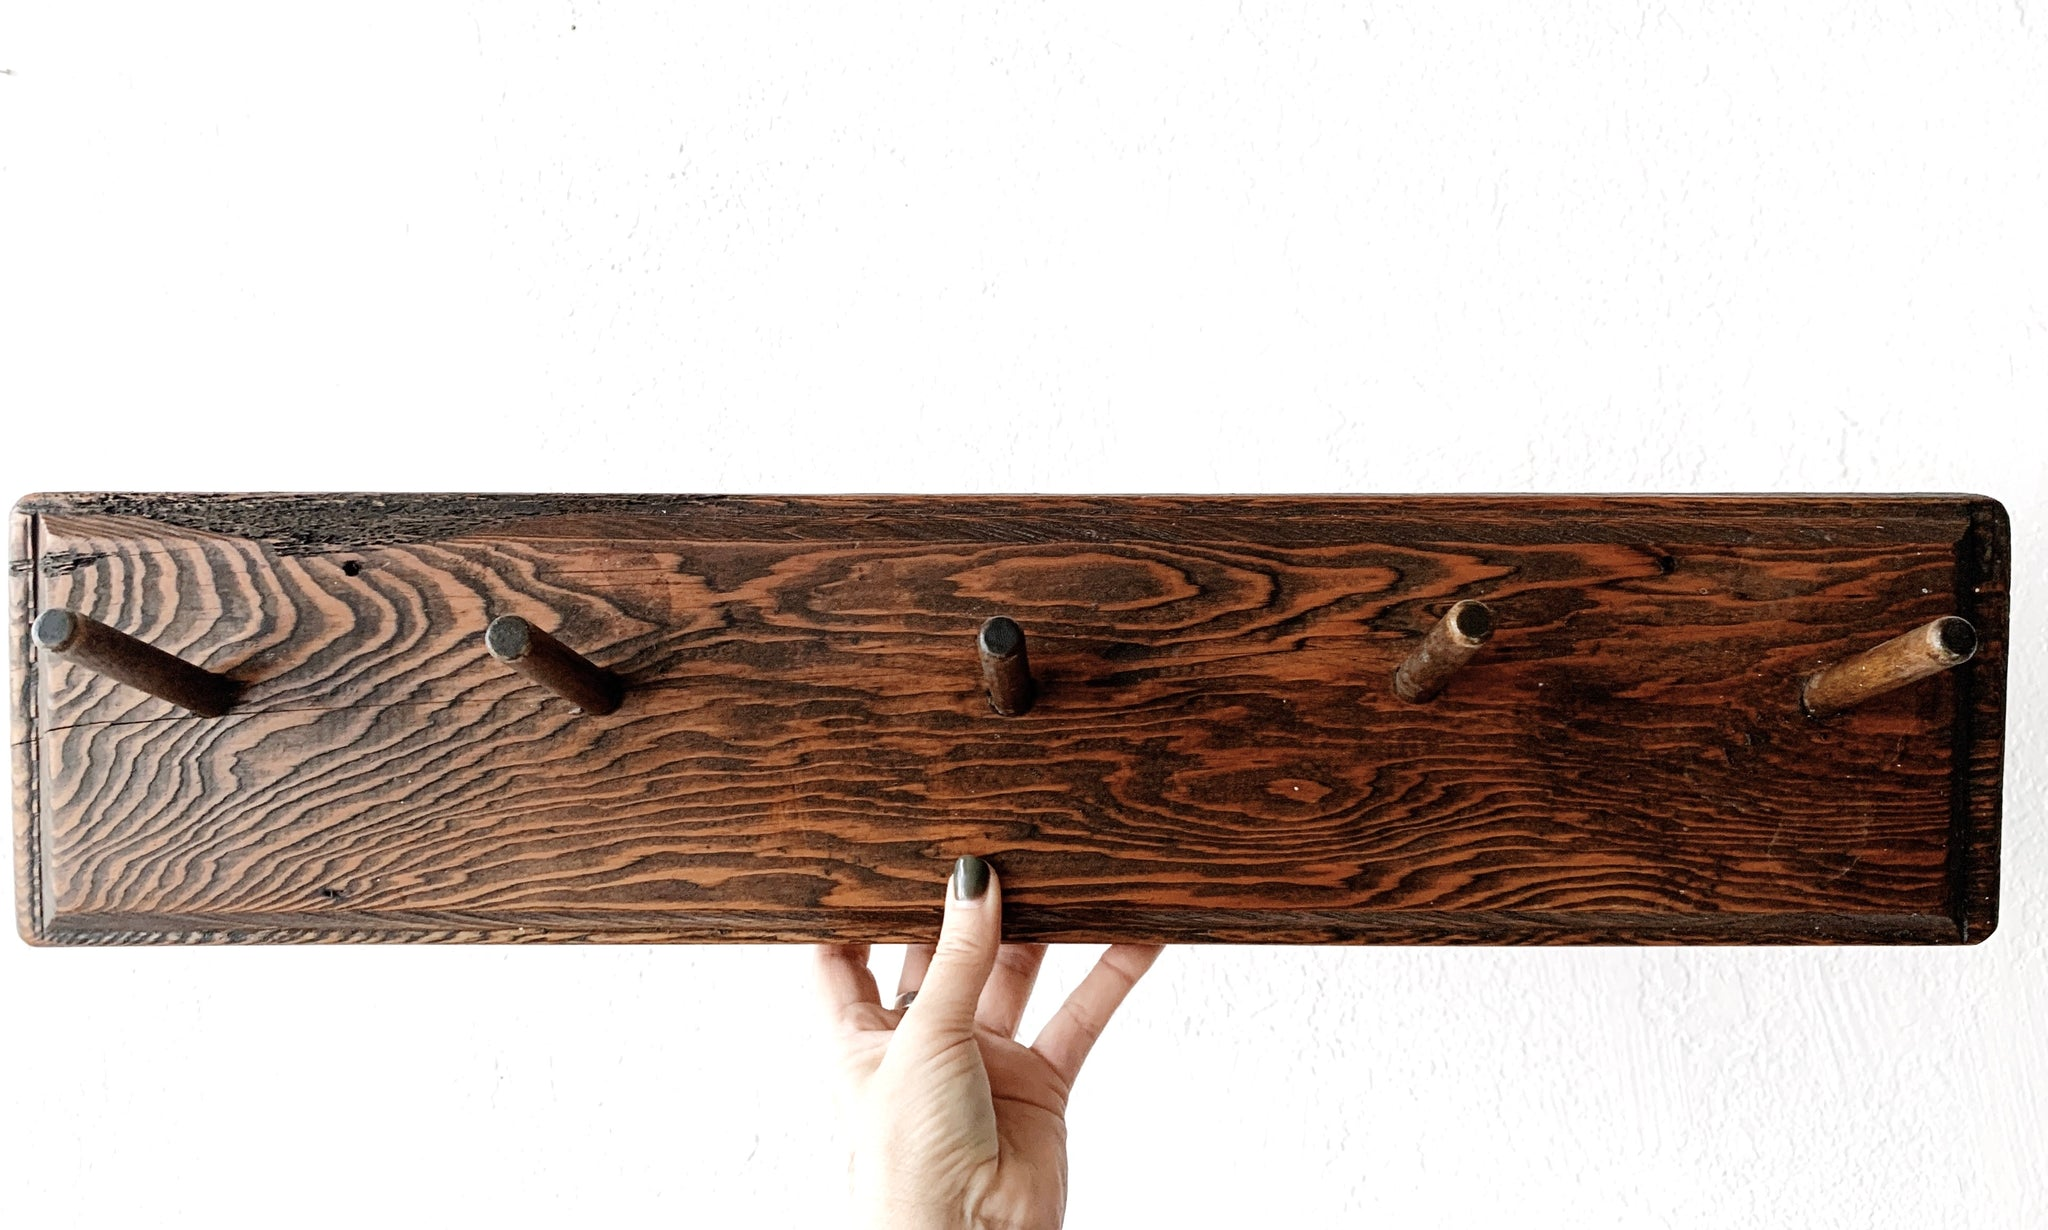 Antique Handmade Wood Peg Rack